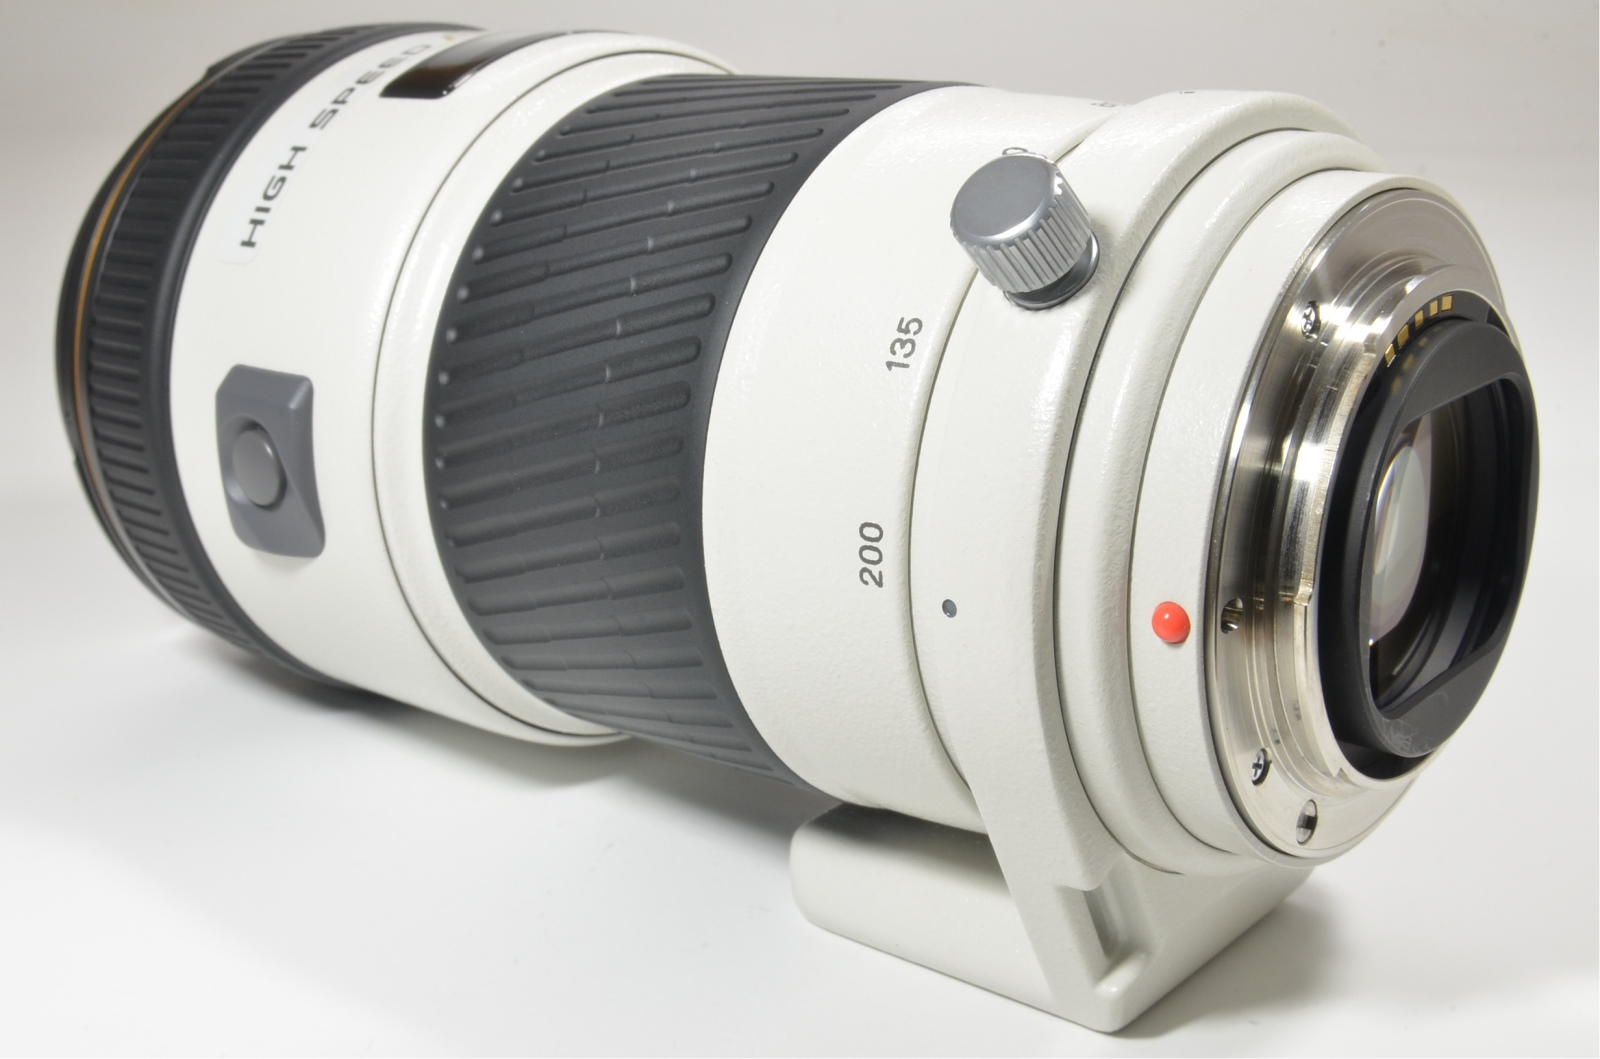 minolta high speed af apo 80-200mm f2.8 g with close-up lens sony